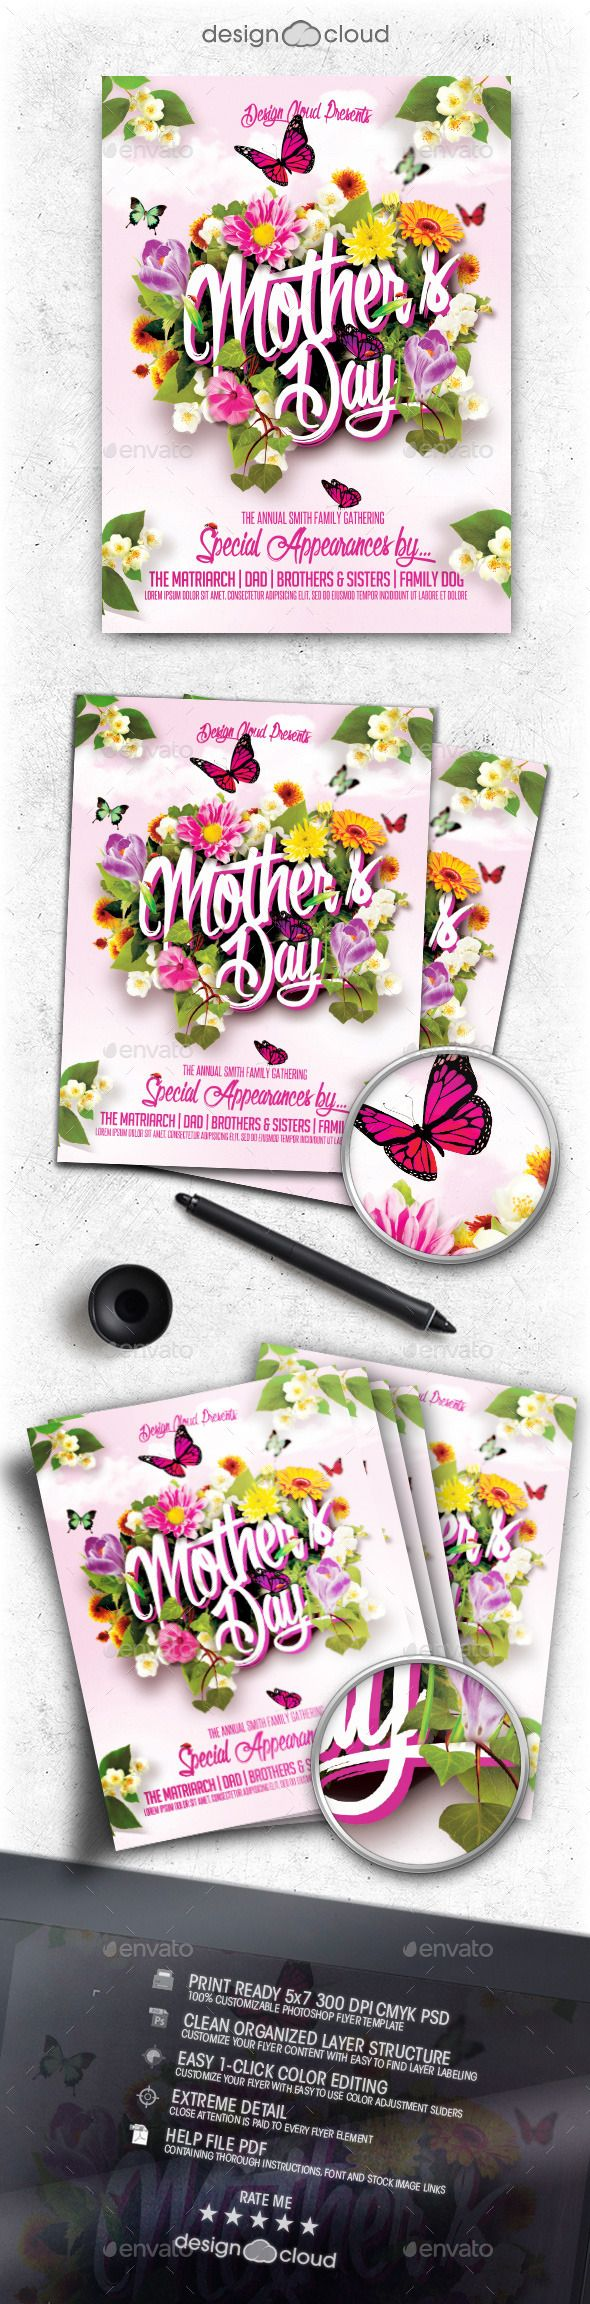 Mother's Day Flyer Template — Photoshop PSD #mother #butterfly • Available here → https://graphicriver.net/item/mothers-day-flyer-template/11274198?ref=pxcr